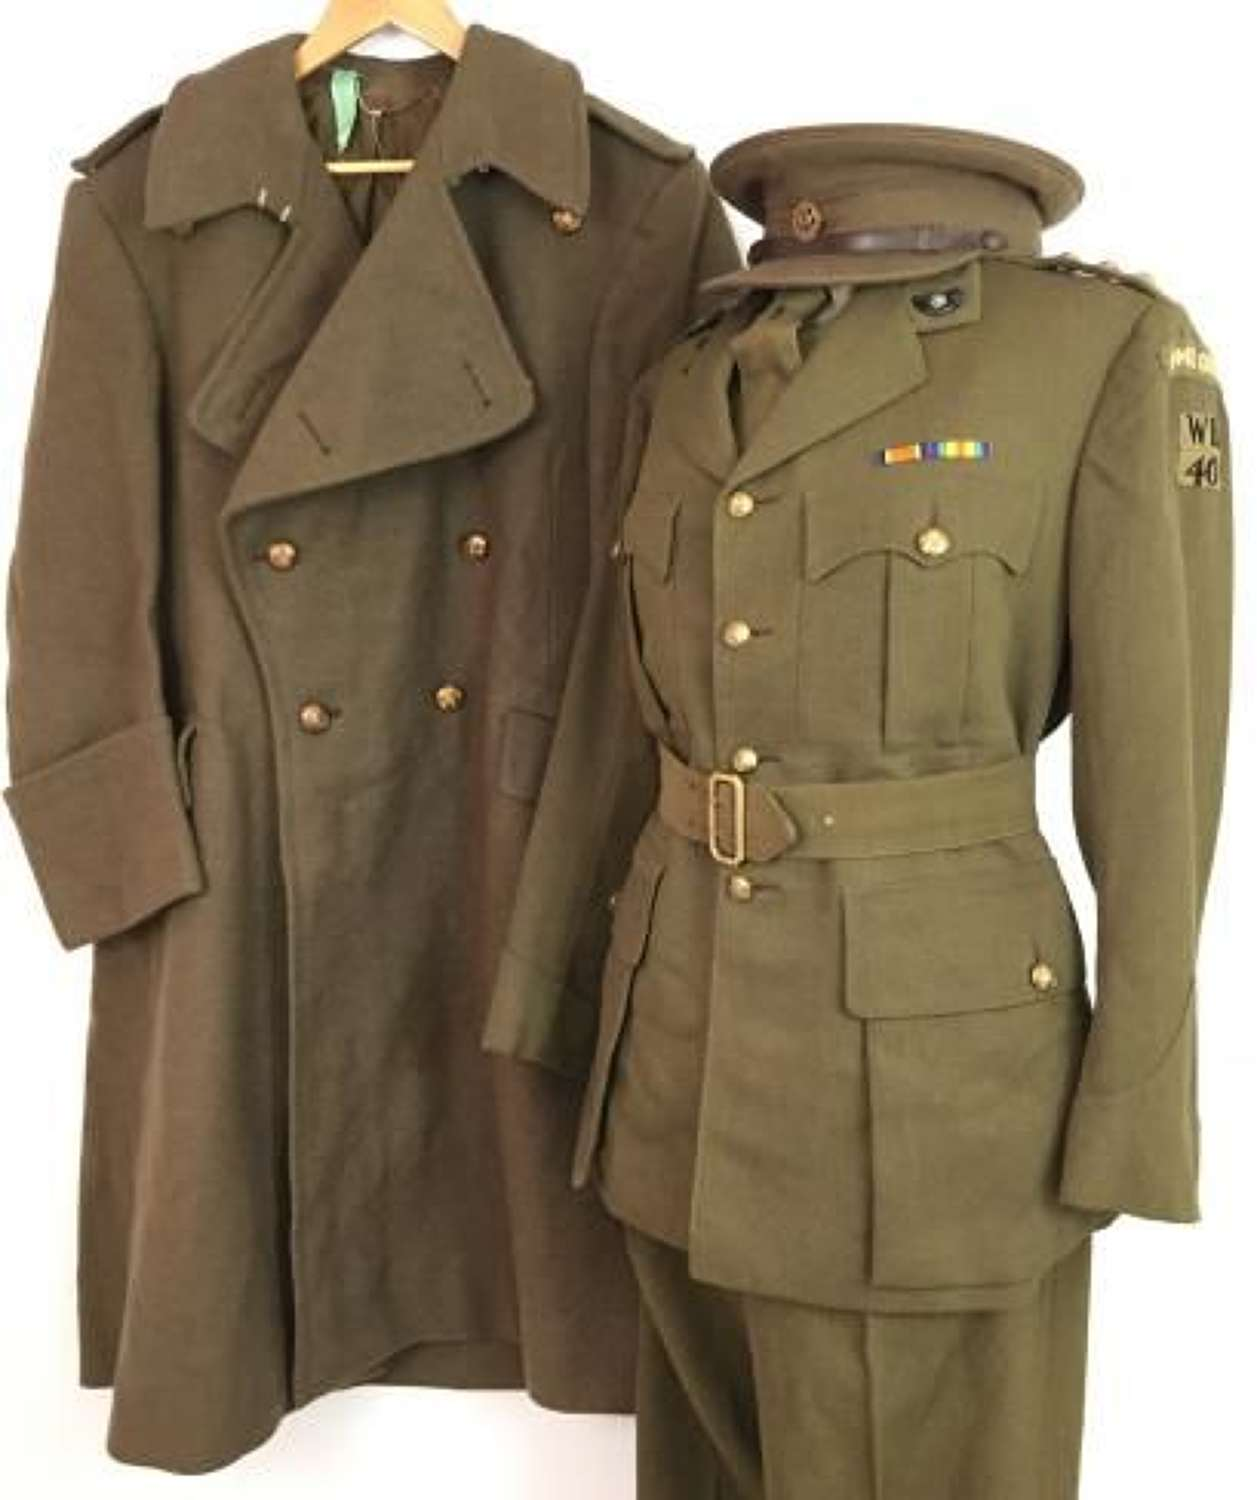 Original WW2 Home Guard Officers Uniform Grouping - 40th West Riding